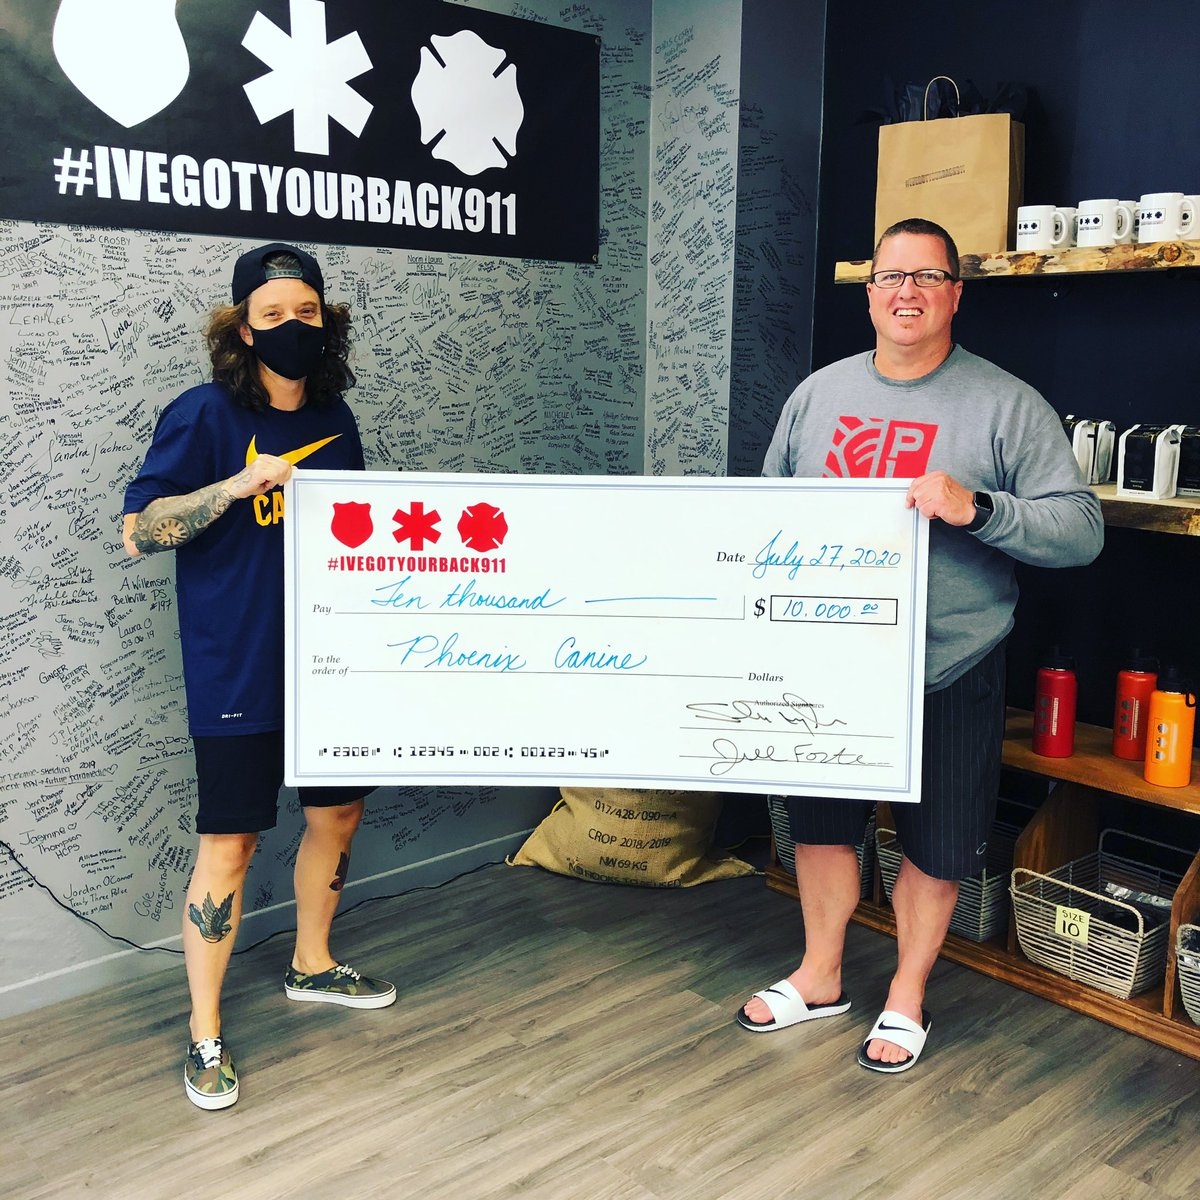 I know this photo may look like the other one but it's not. We were able to donate $10000 to Phoenix Canine in support of their/our new service dog program 🚀🚀🤙🏼